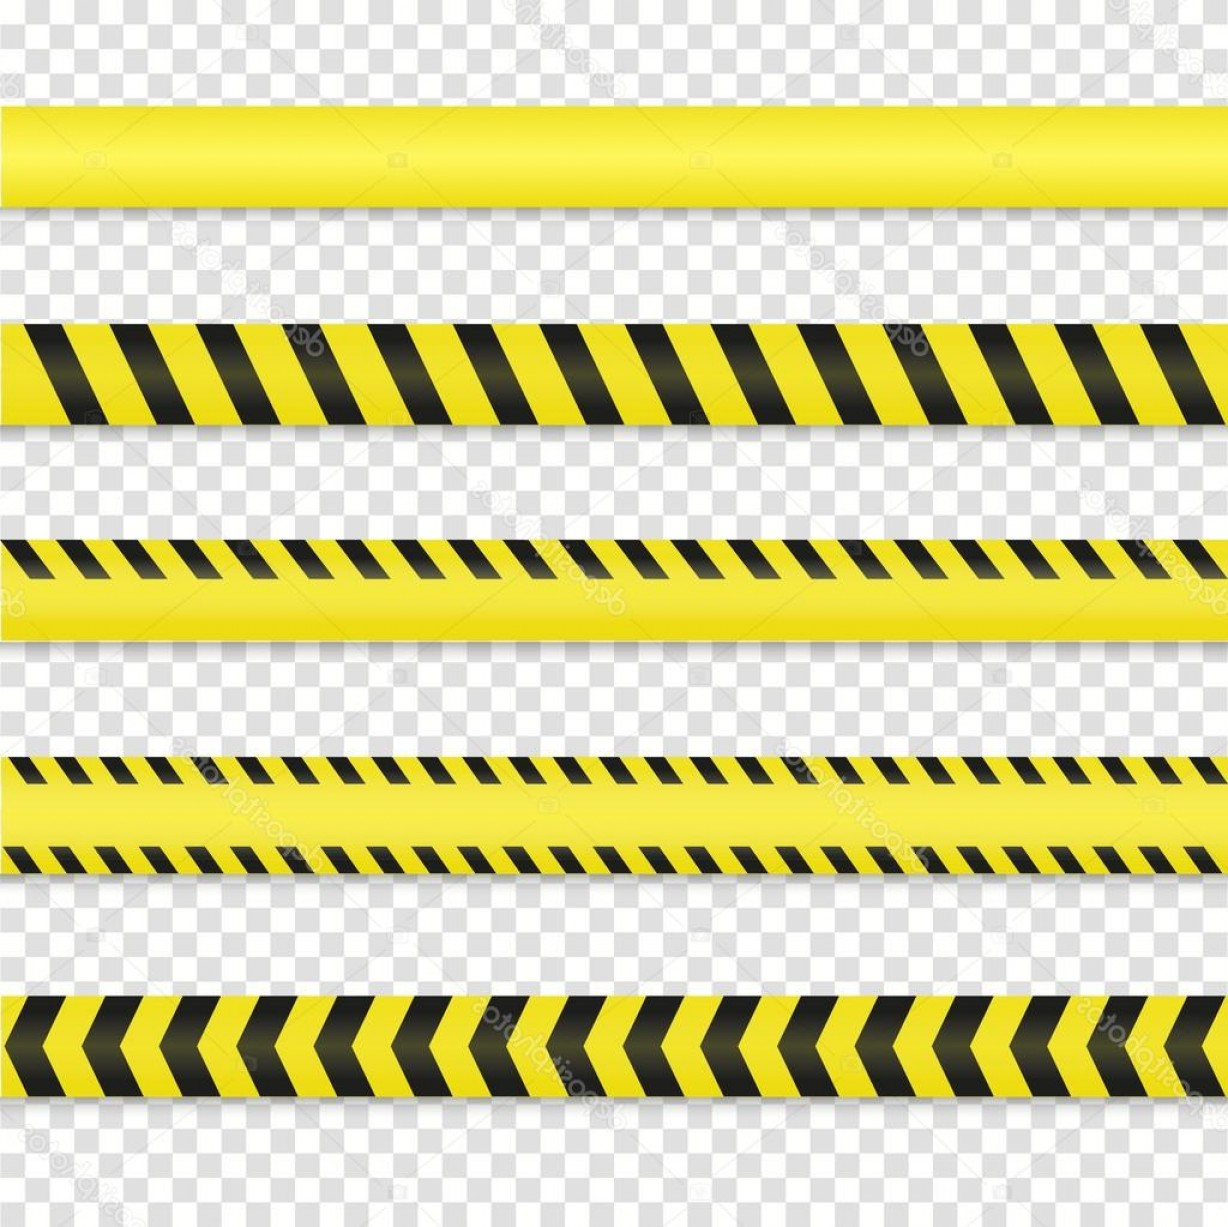 Caution Stripes Vector: Stock Illustration Police And Danger Tapes